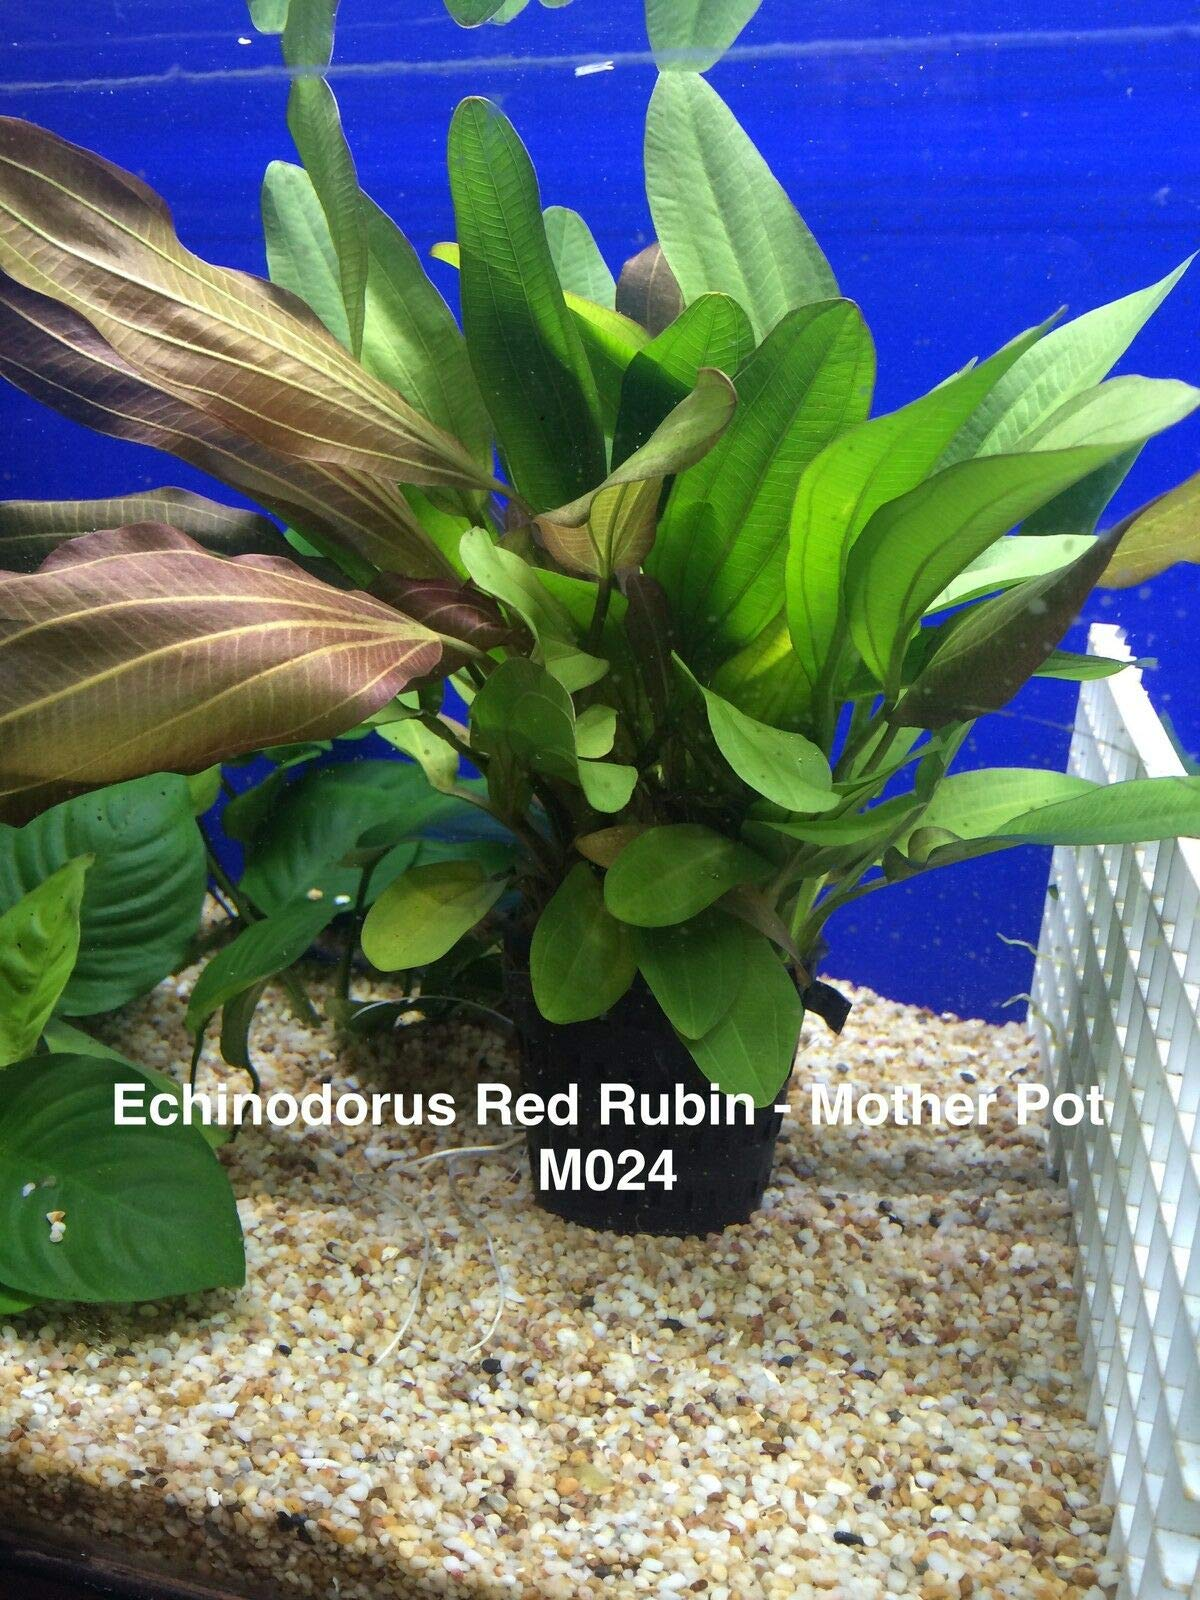 Echinodorus red Rubin Mother Pot Live Aquatic Fresh Water Plant M024 jKE -127